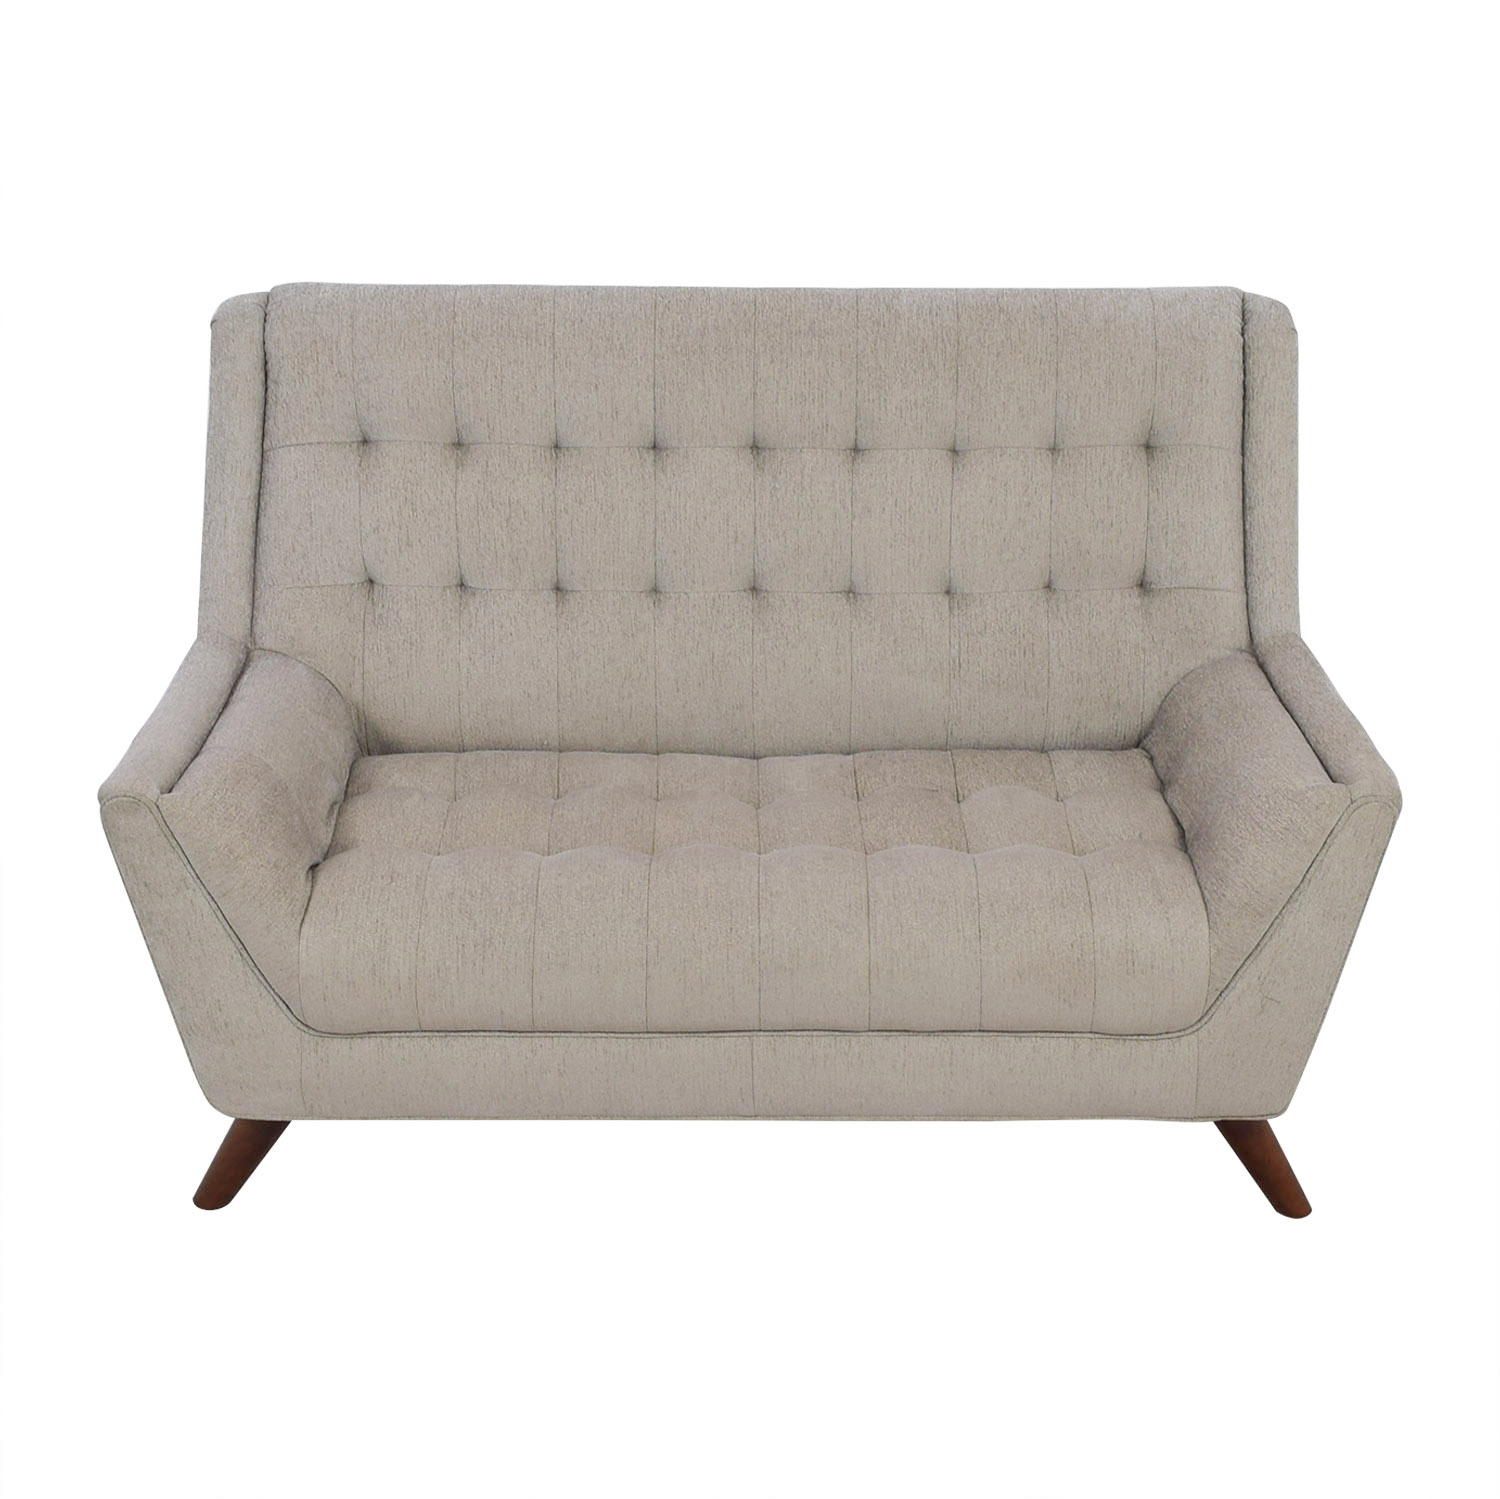 wayfair furniture sofa lancaster leather sleeper 63 off tufted loveseat sofas